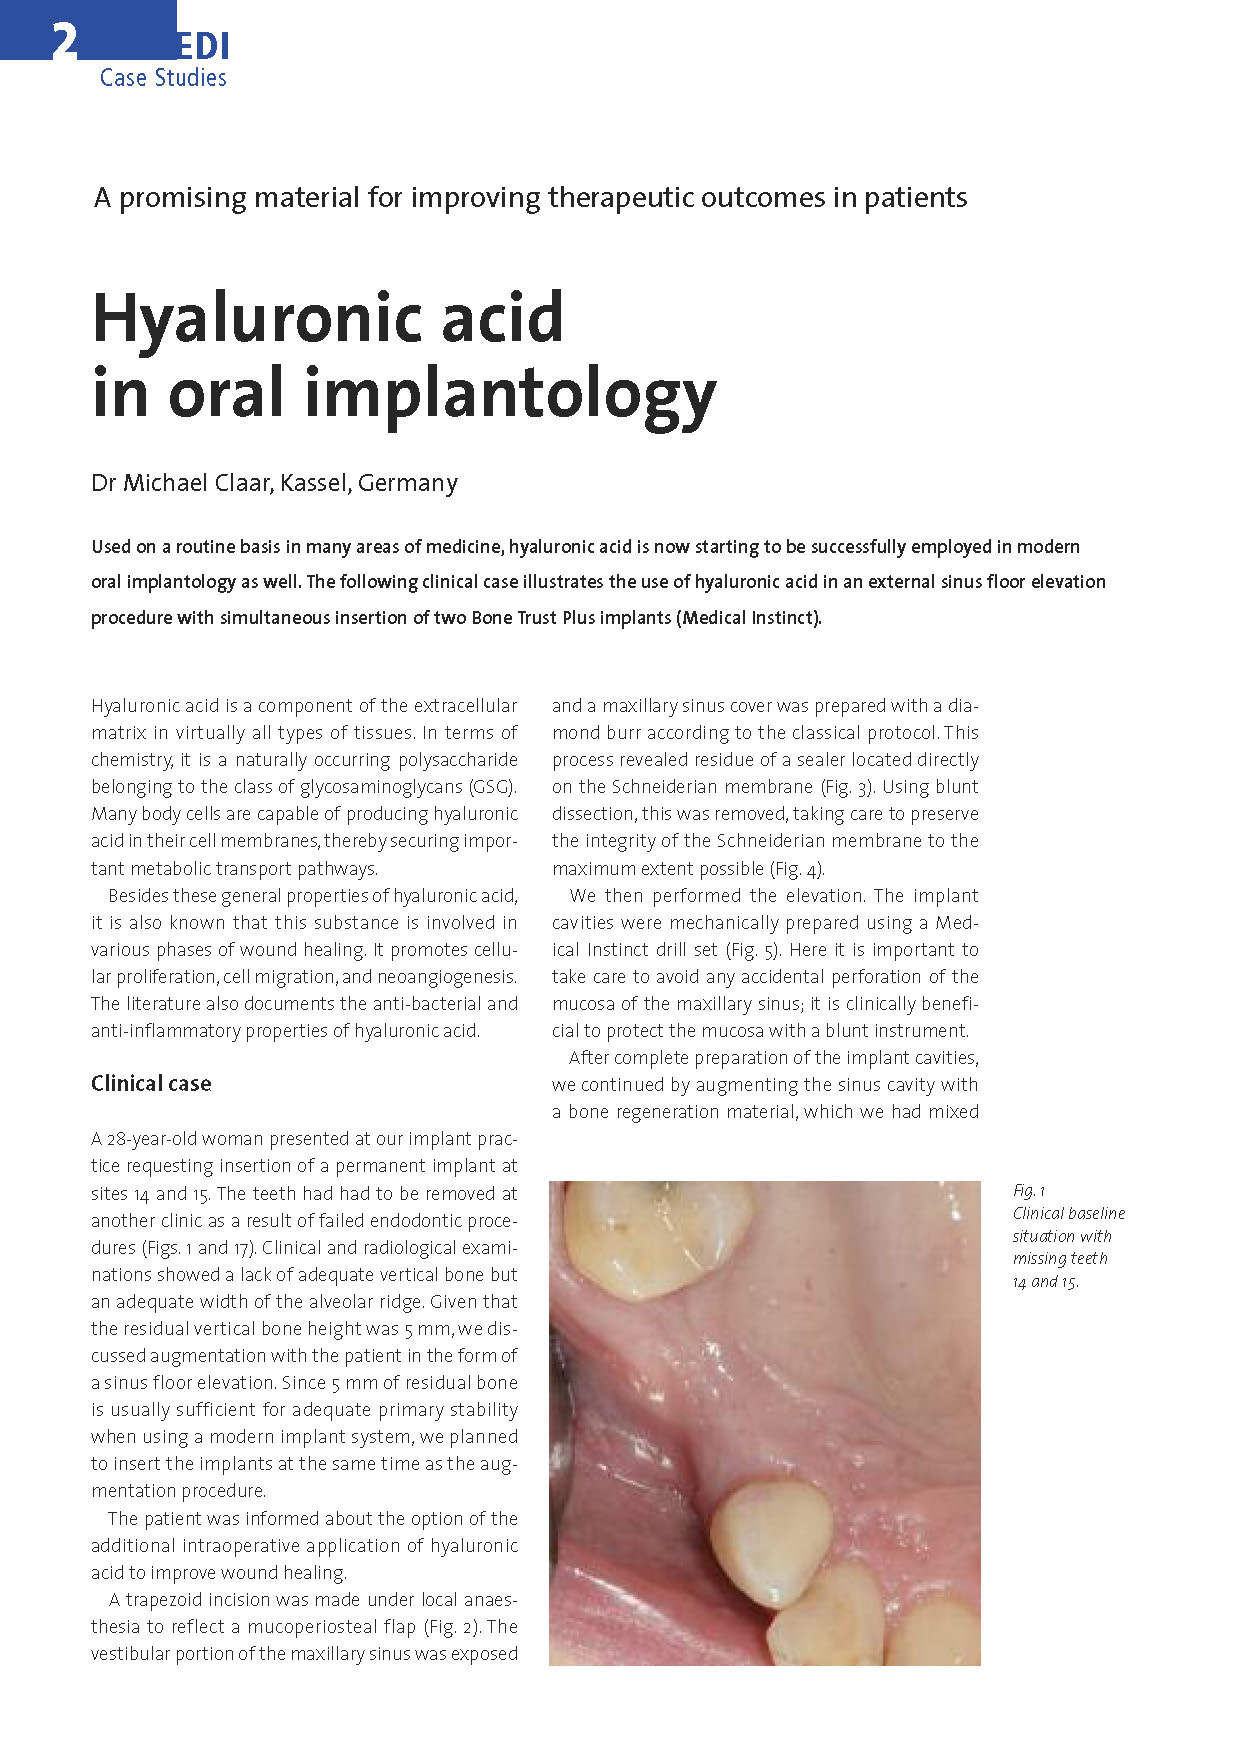 Case Studie - Hyaluronic Acid In Oral Implantology